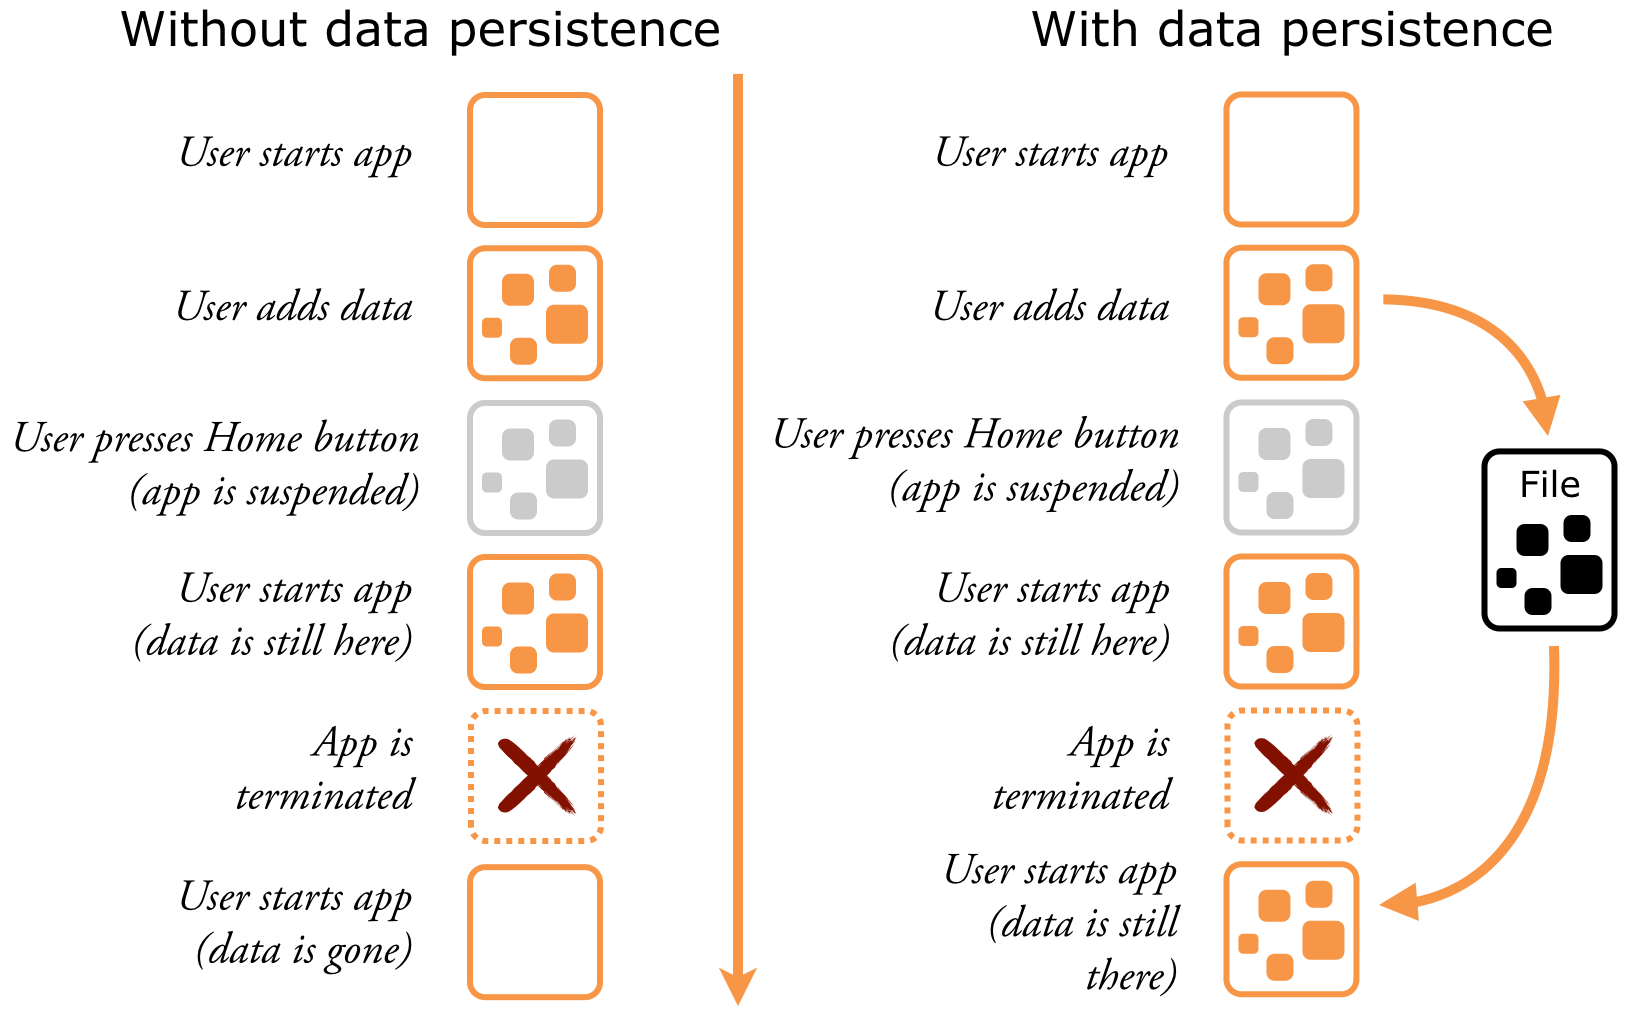 Apps need to persist data just in case the app is terminated